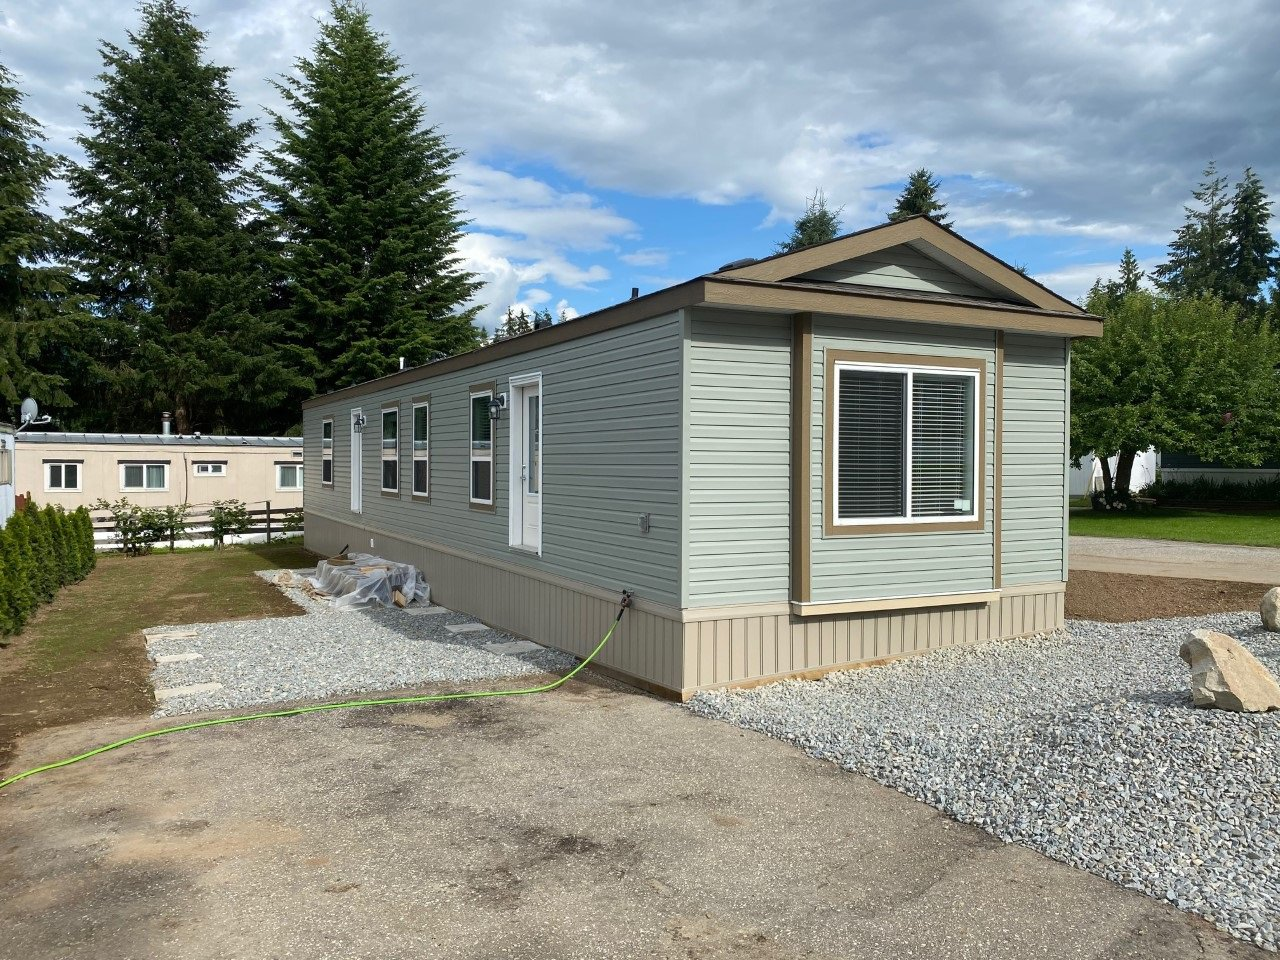 Main Photo: 44 3350 Northeast 10 Avenue in Salmon Arm: EVERGREEN MHP House for sale (NE Salmon Arm)  : MLS®# 10210730